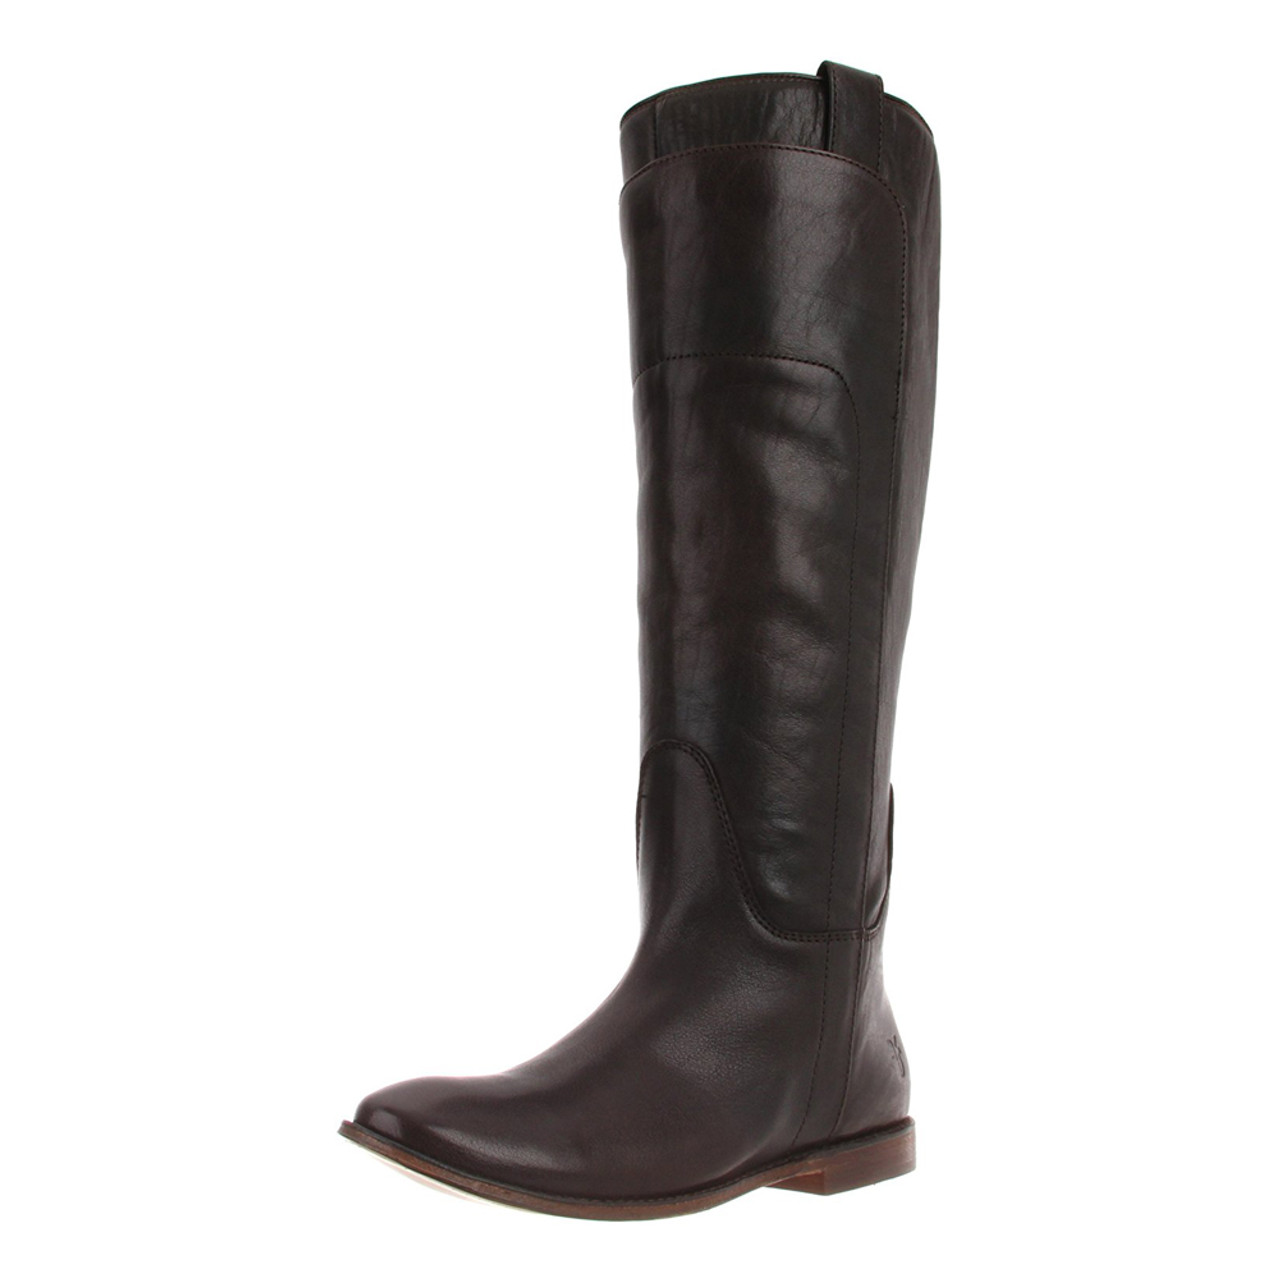 c2a829f1a6e FRYE Women's Paige Tall Riding Boot Dark Brown Burnished Full Grain